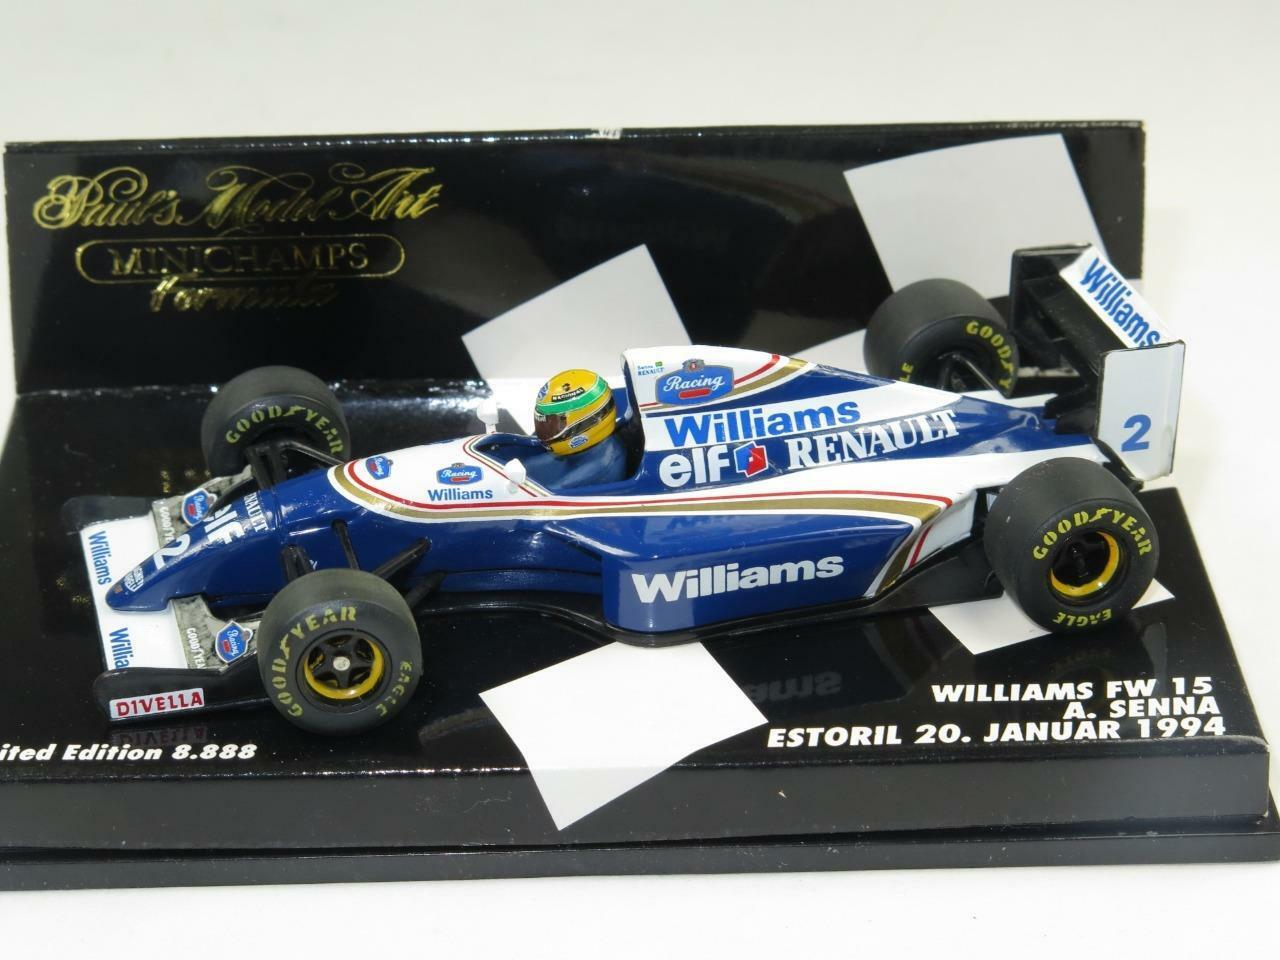 MINICHAMPS 1 43 voiture F1 Williams FW15 Ayrton Senna Estoril Test 1994 Comme neuf Ltd Ed